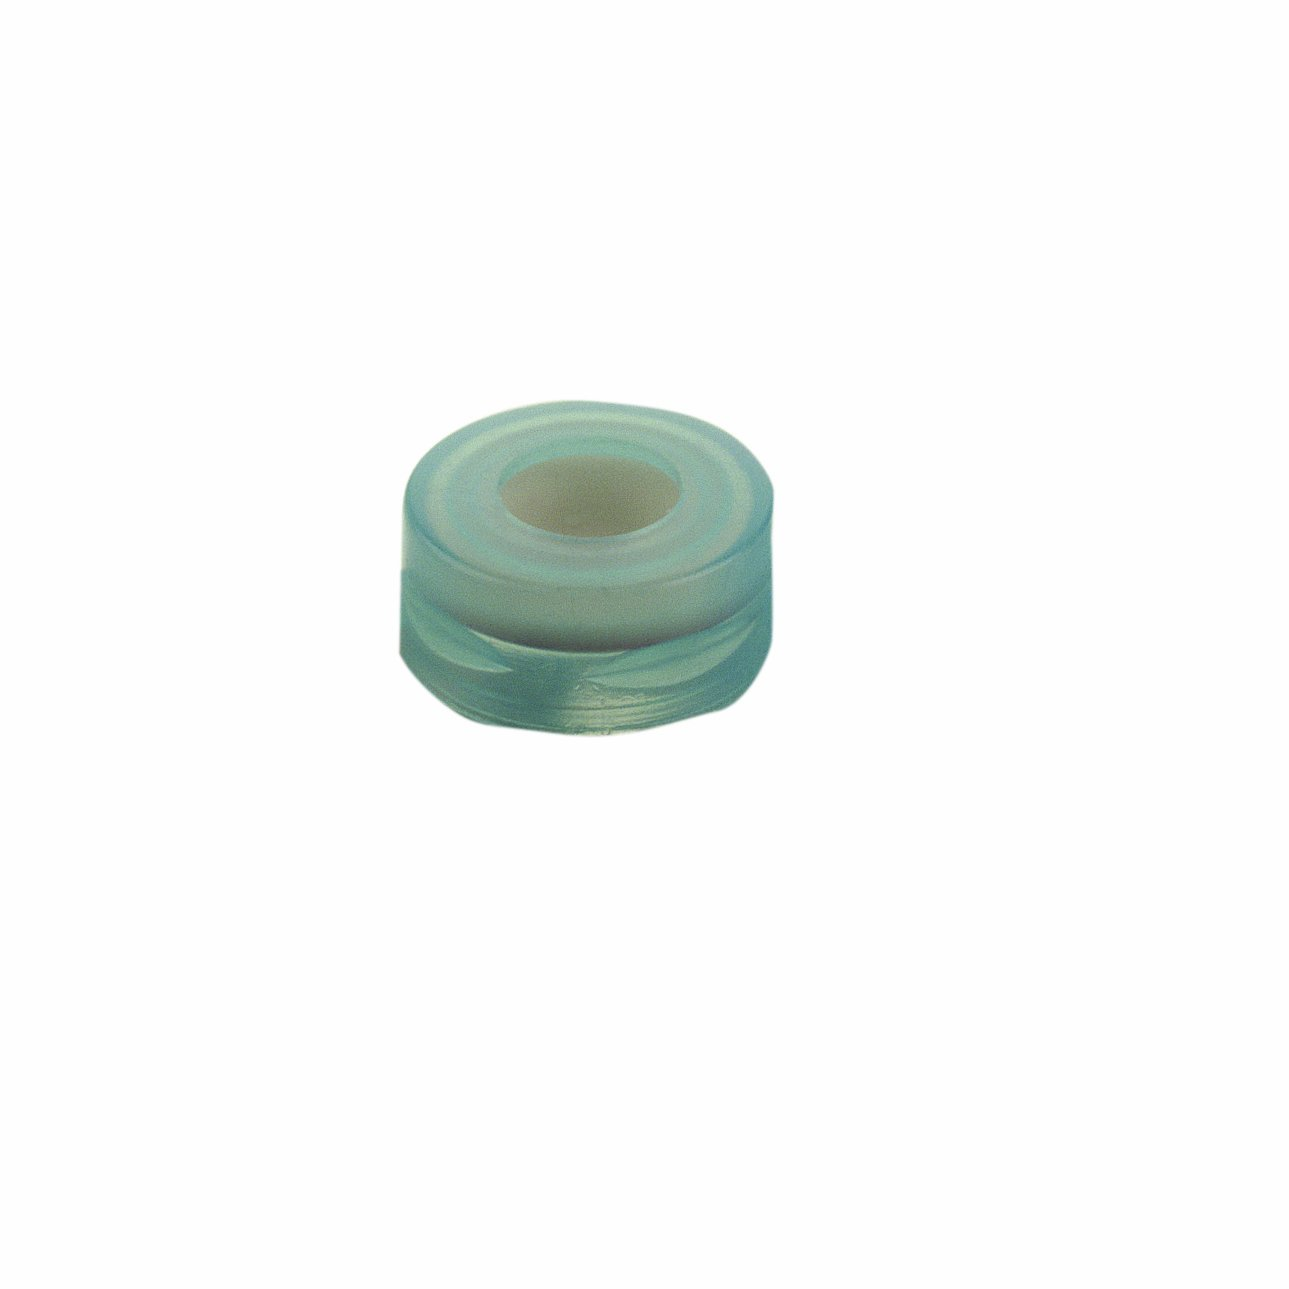 National Scientific Green Polypropylene, PTFE/Silicone/PTFE Target DP RoboCap with Septum (Case of 1000)